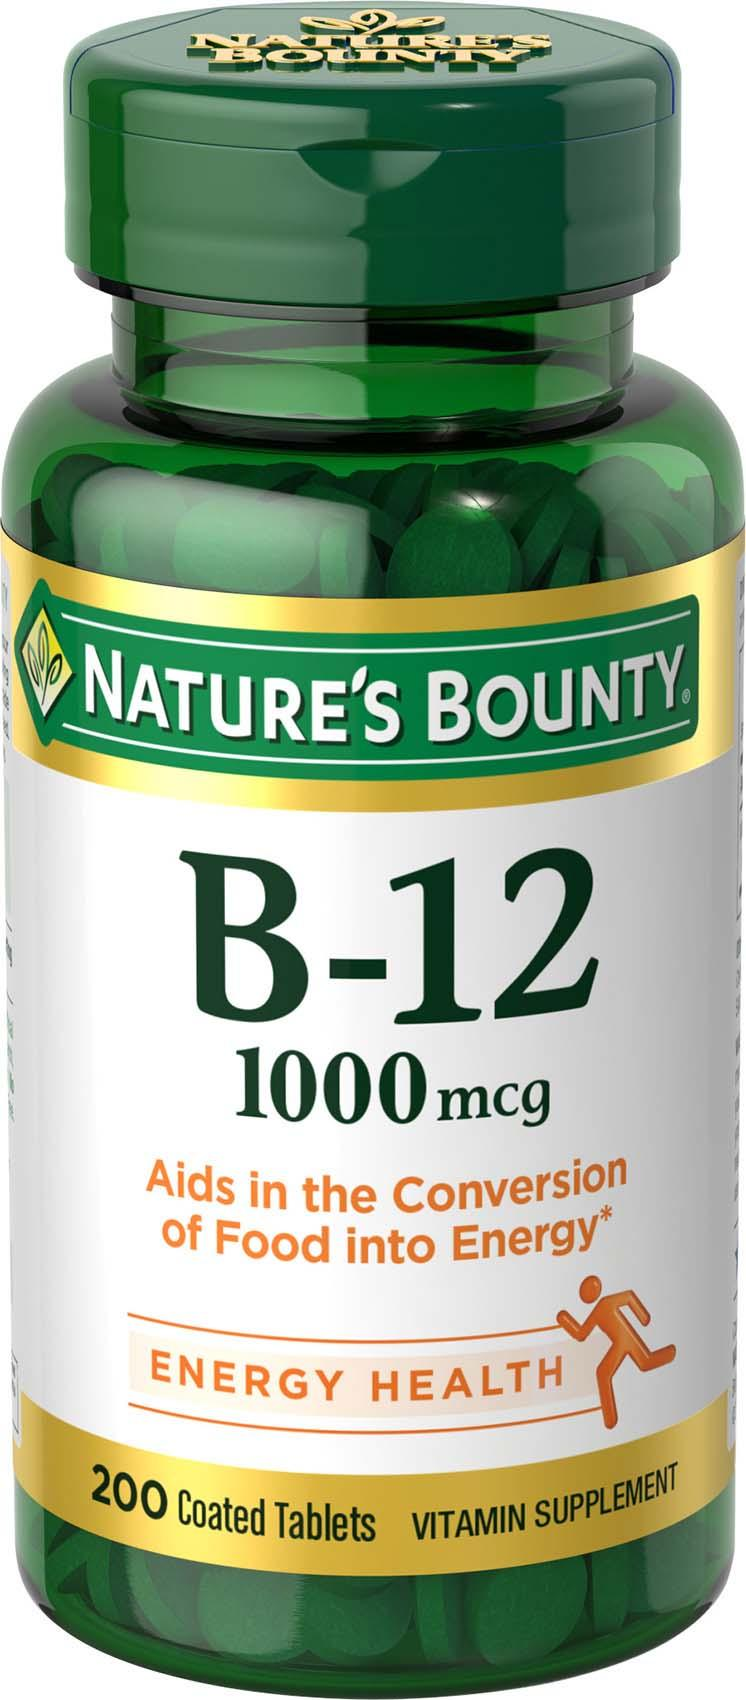 nature 39 s bounty vitamin b 12 1000 mcg 200 coated tablets vitamin supplement. Black Bedroom Furniture Sets. Home Design Ideas